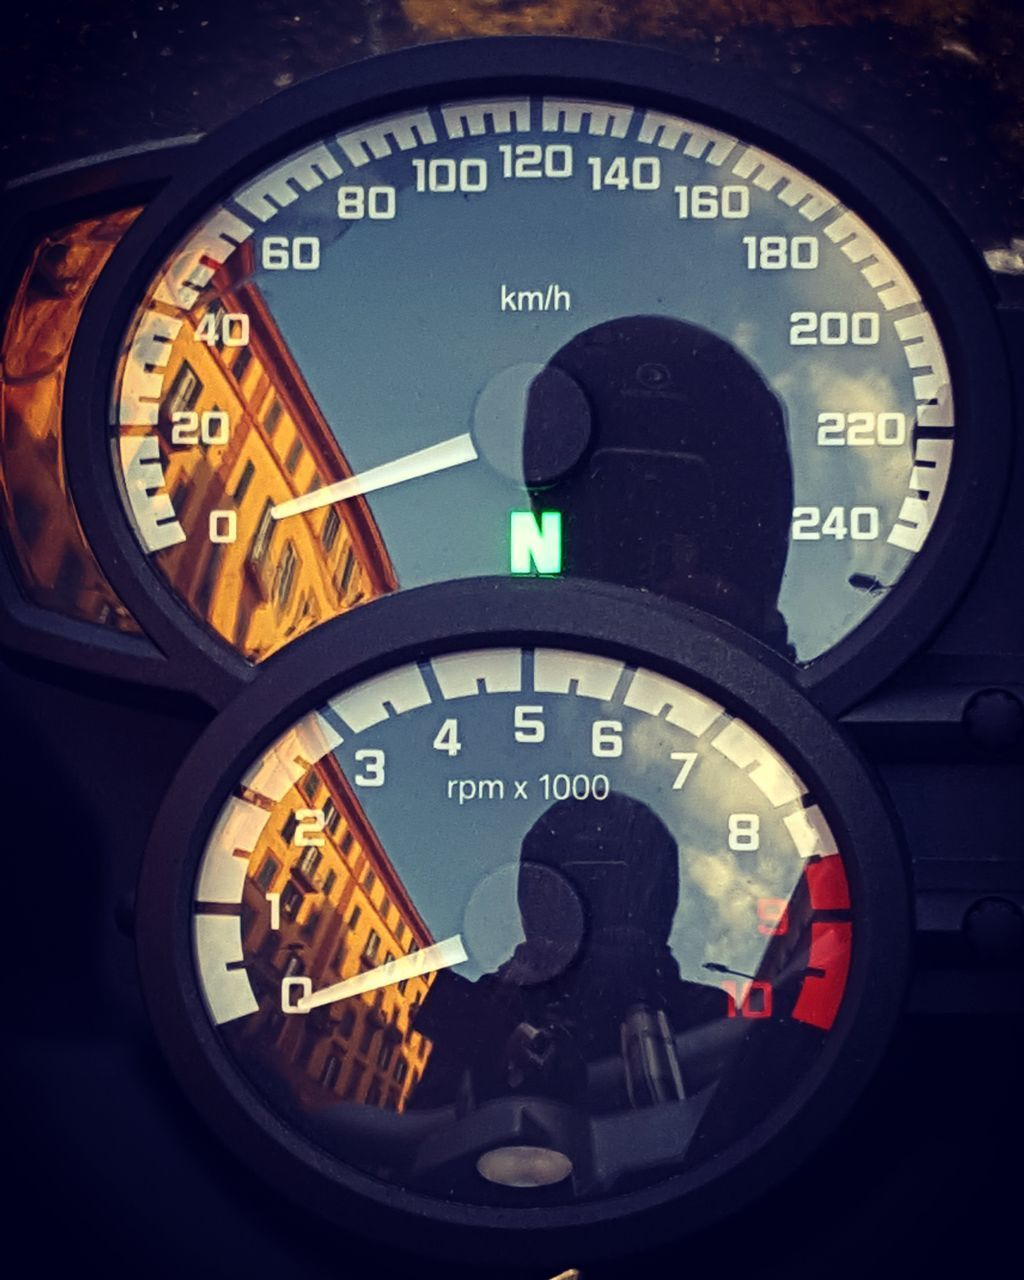 number, transportation, mode of transportation, speedometer, close-up, control panel, dashboard, vehicle interior, motor vehicle, car, technology, communication, no people, instrument of measurement, car interior, text, geometric shape, equipment, indoors, gauge, meter - instrument of measurement